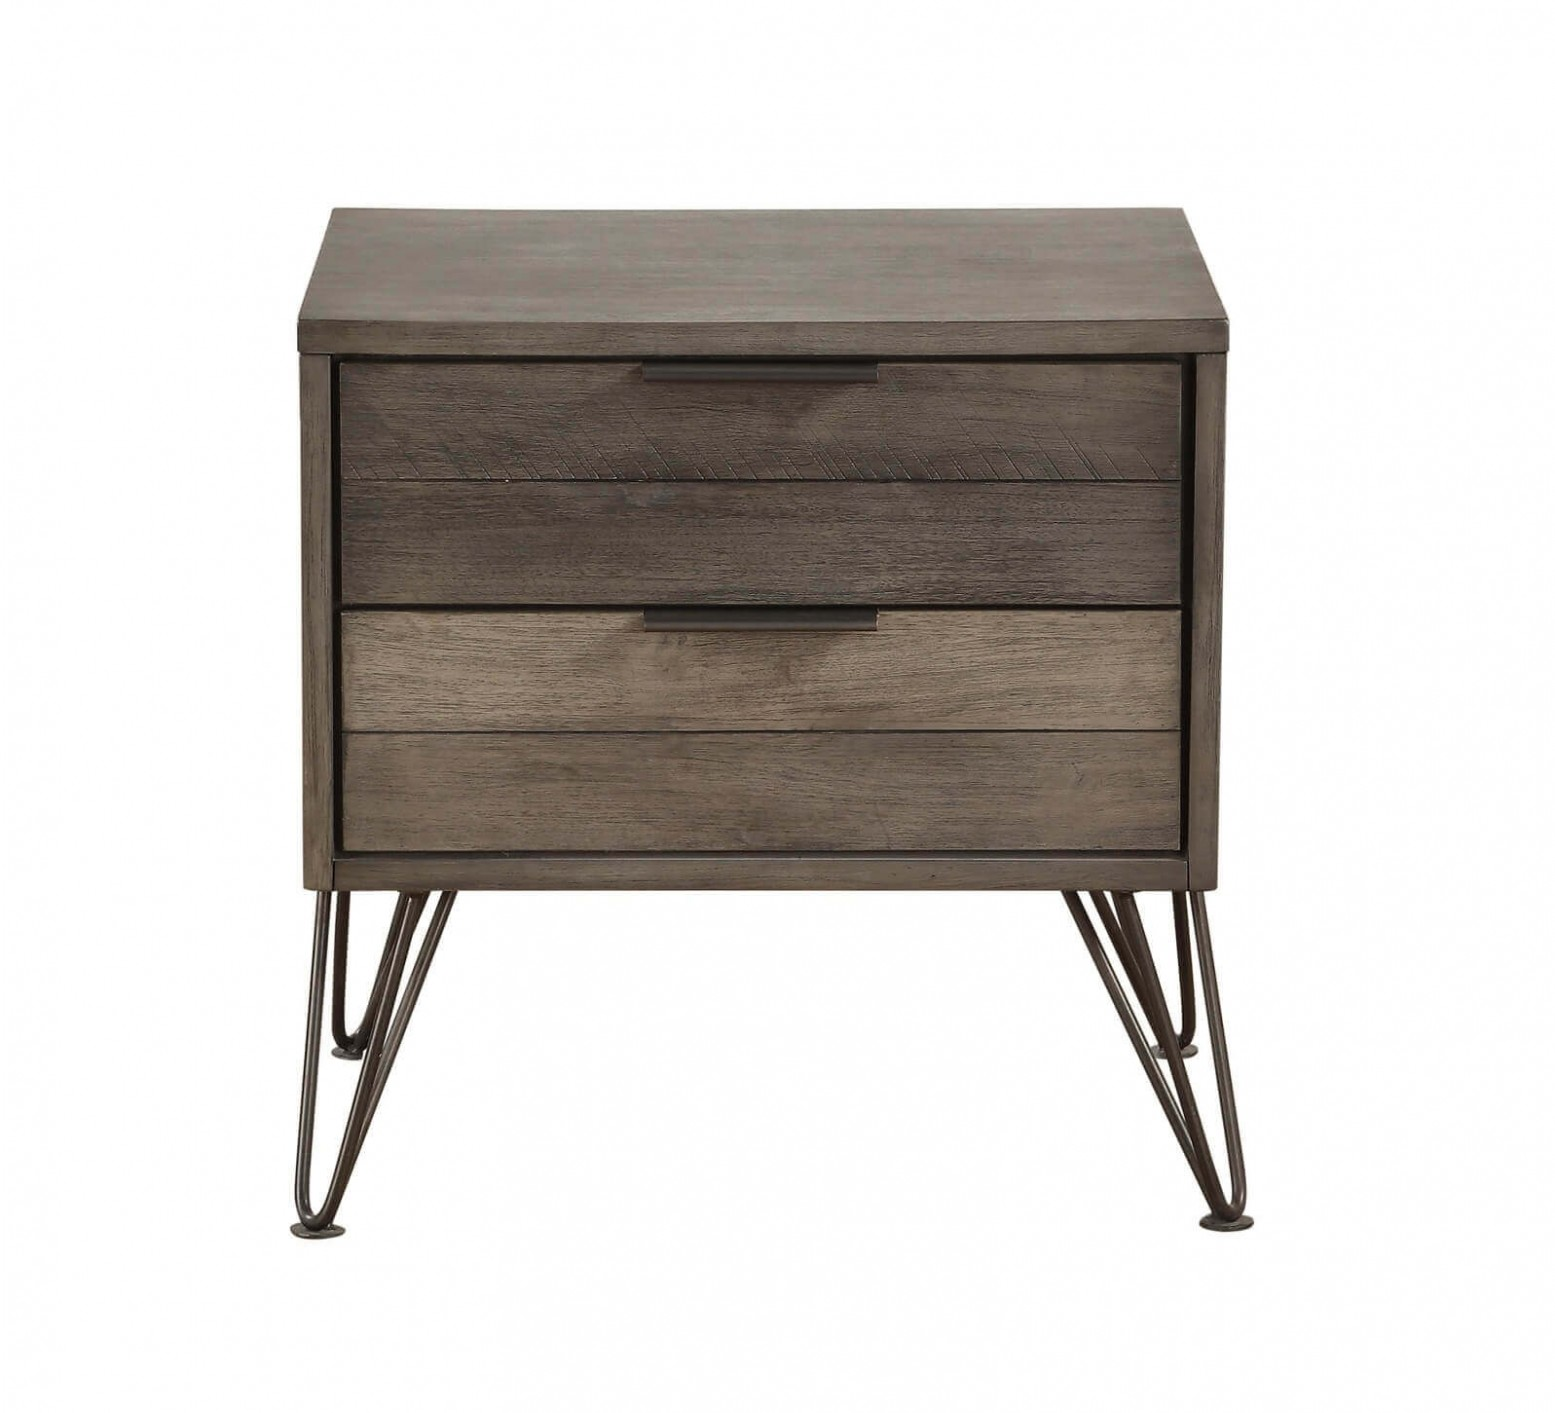 Urbanite Wood Wood Veneer Nightstand